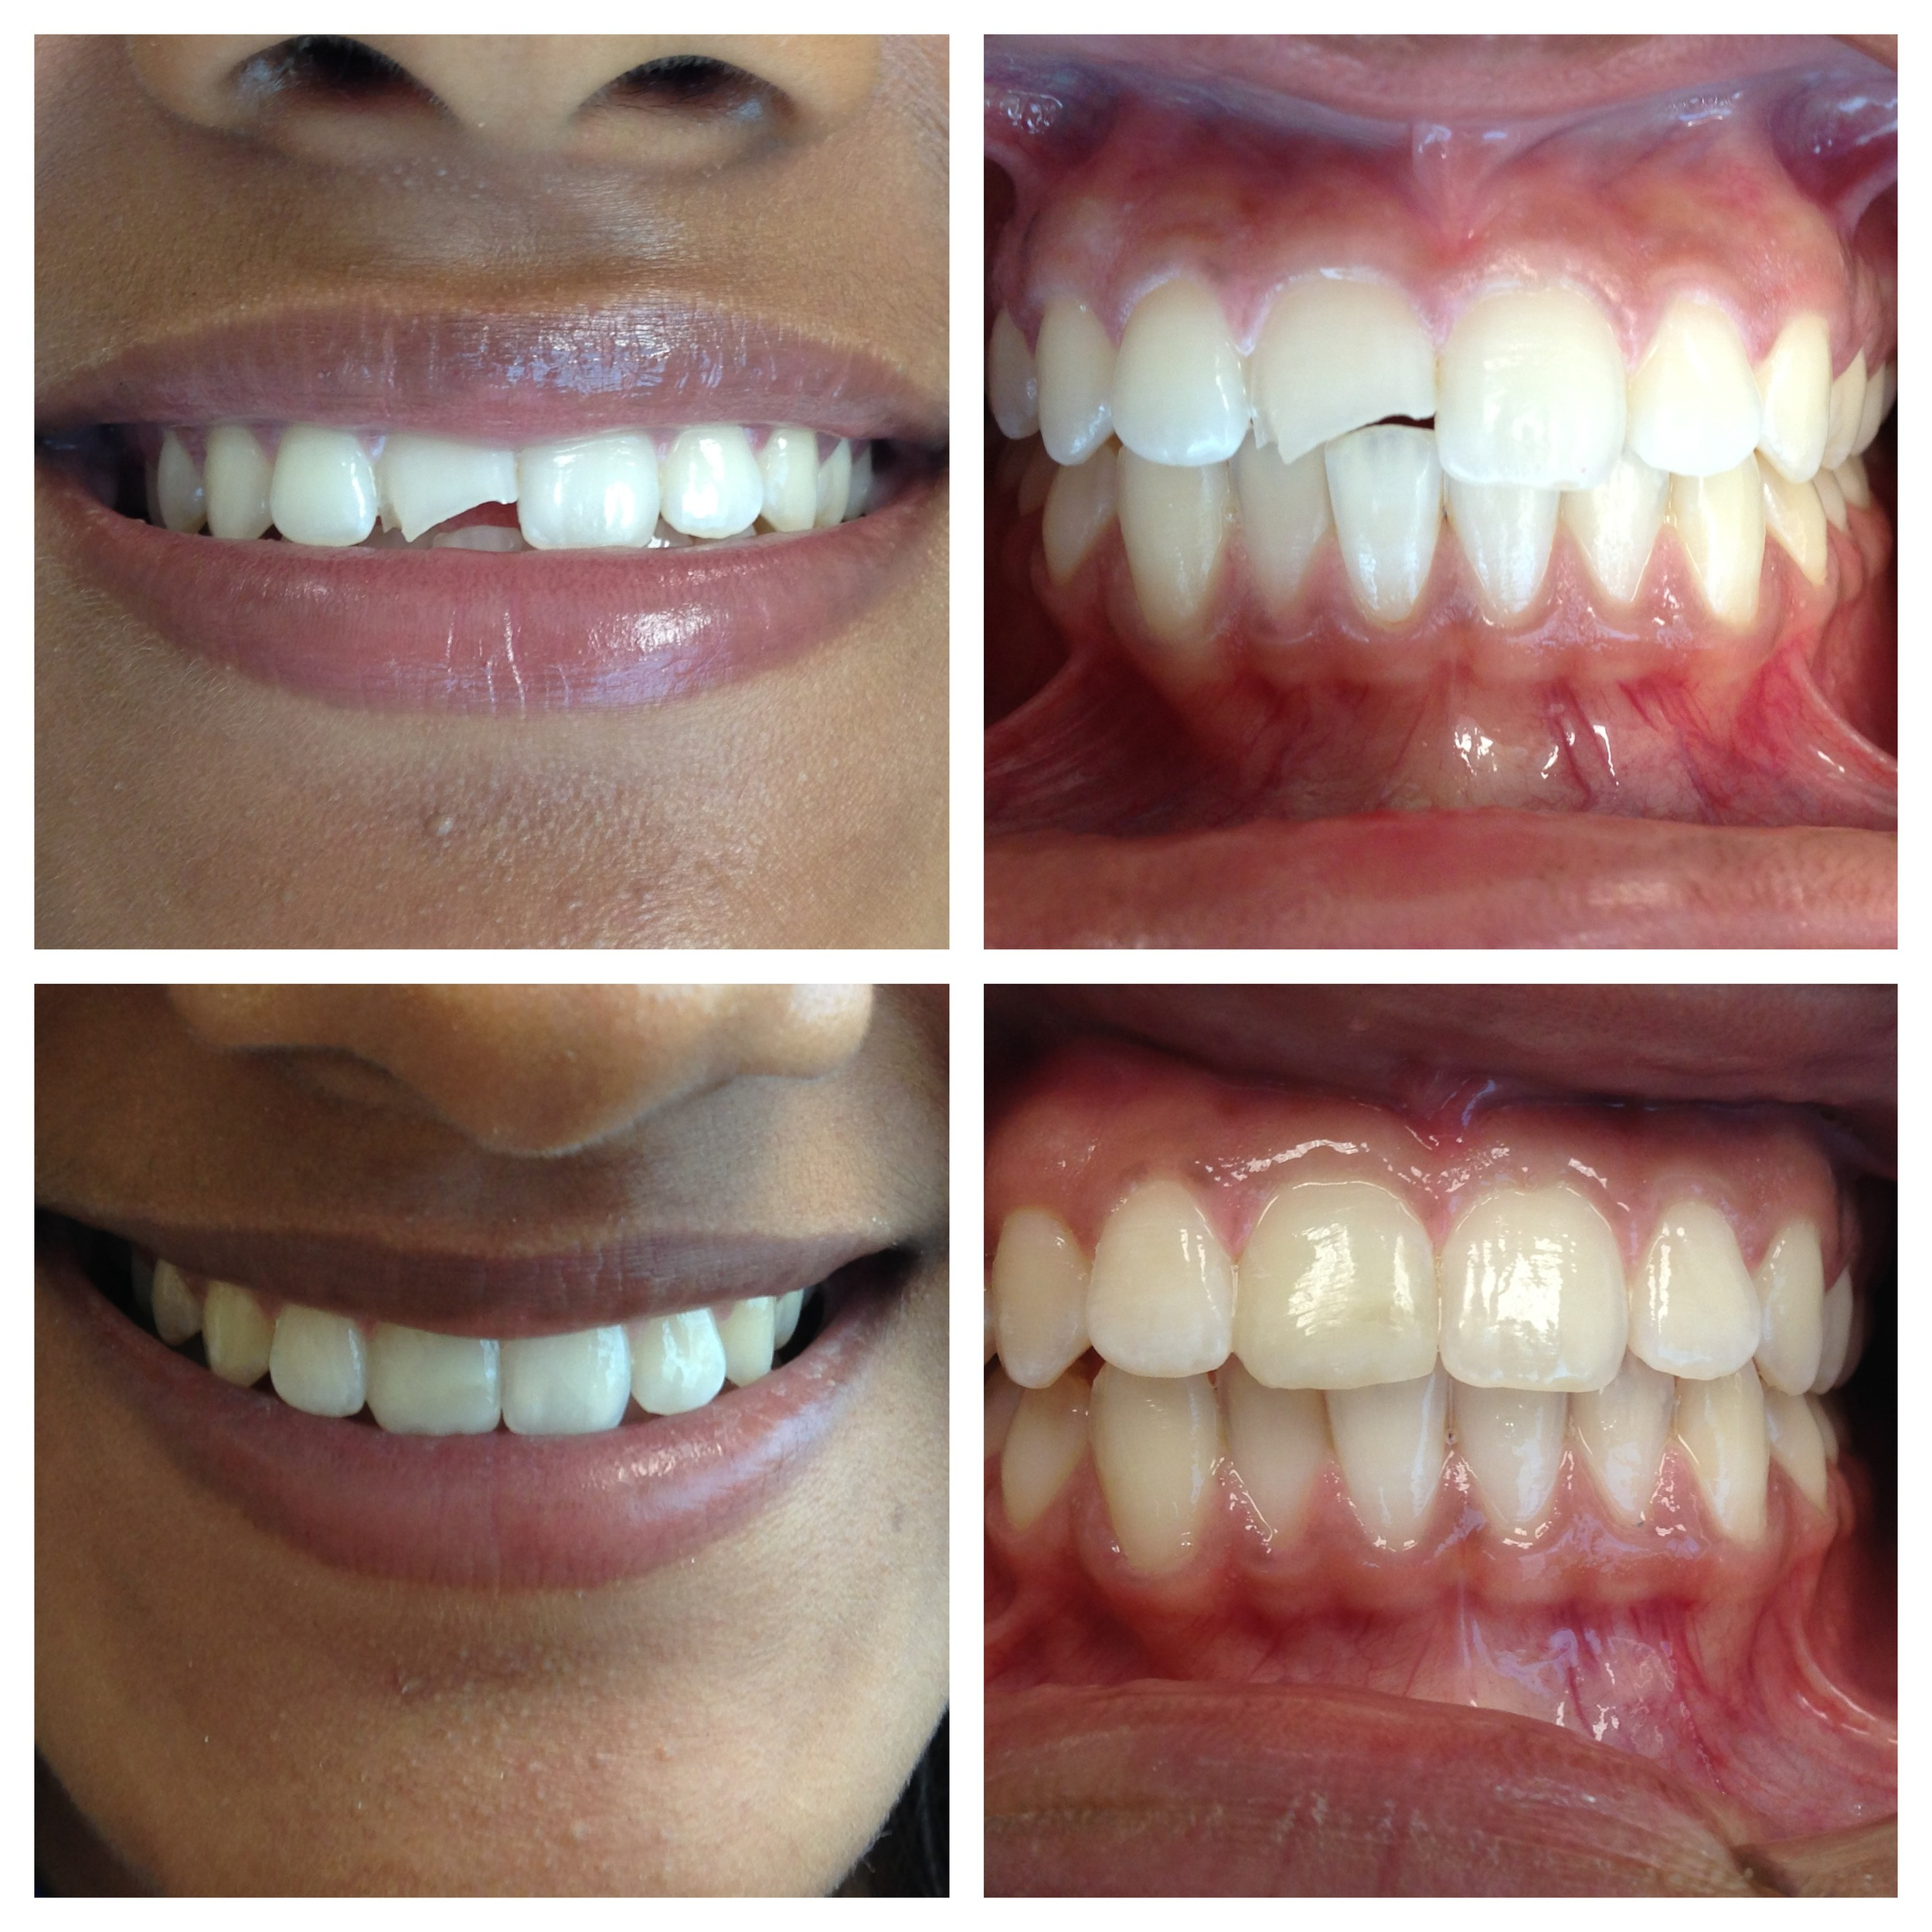 This is one of my teen-aged patients who chipped her tooth during a recreational-related injury. I was happy to help her regain her confidence with a bonded filling!